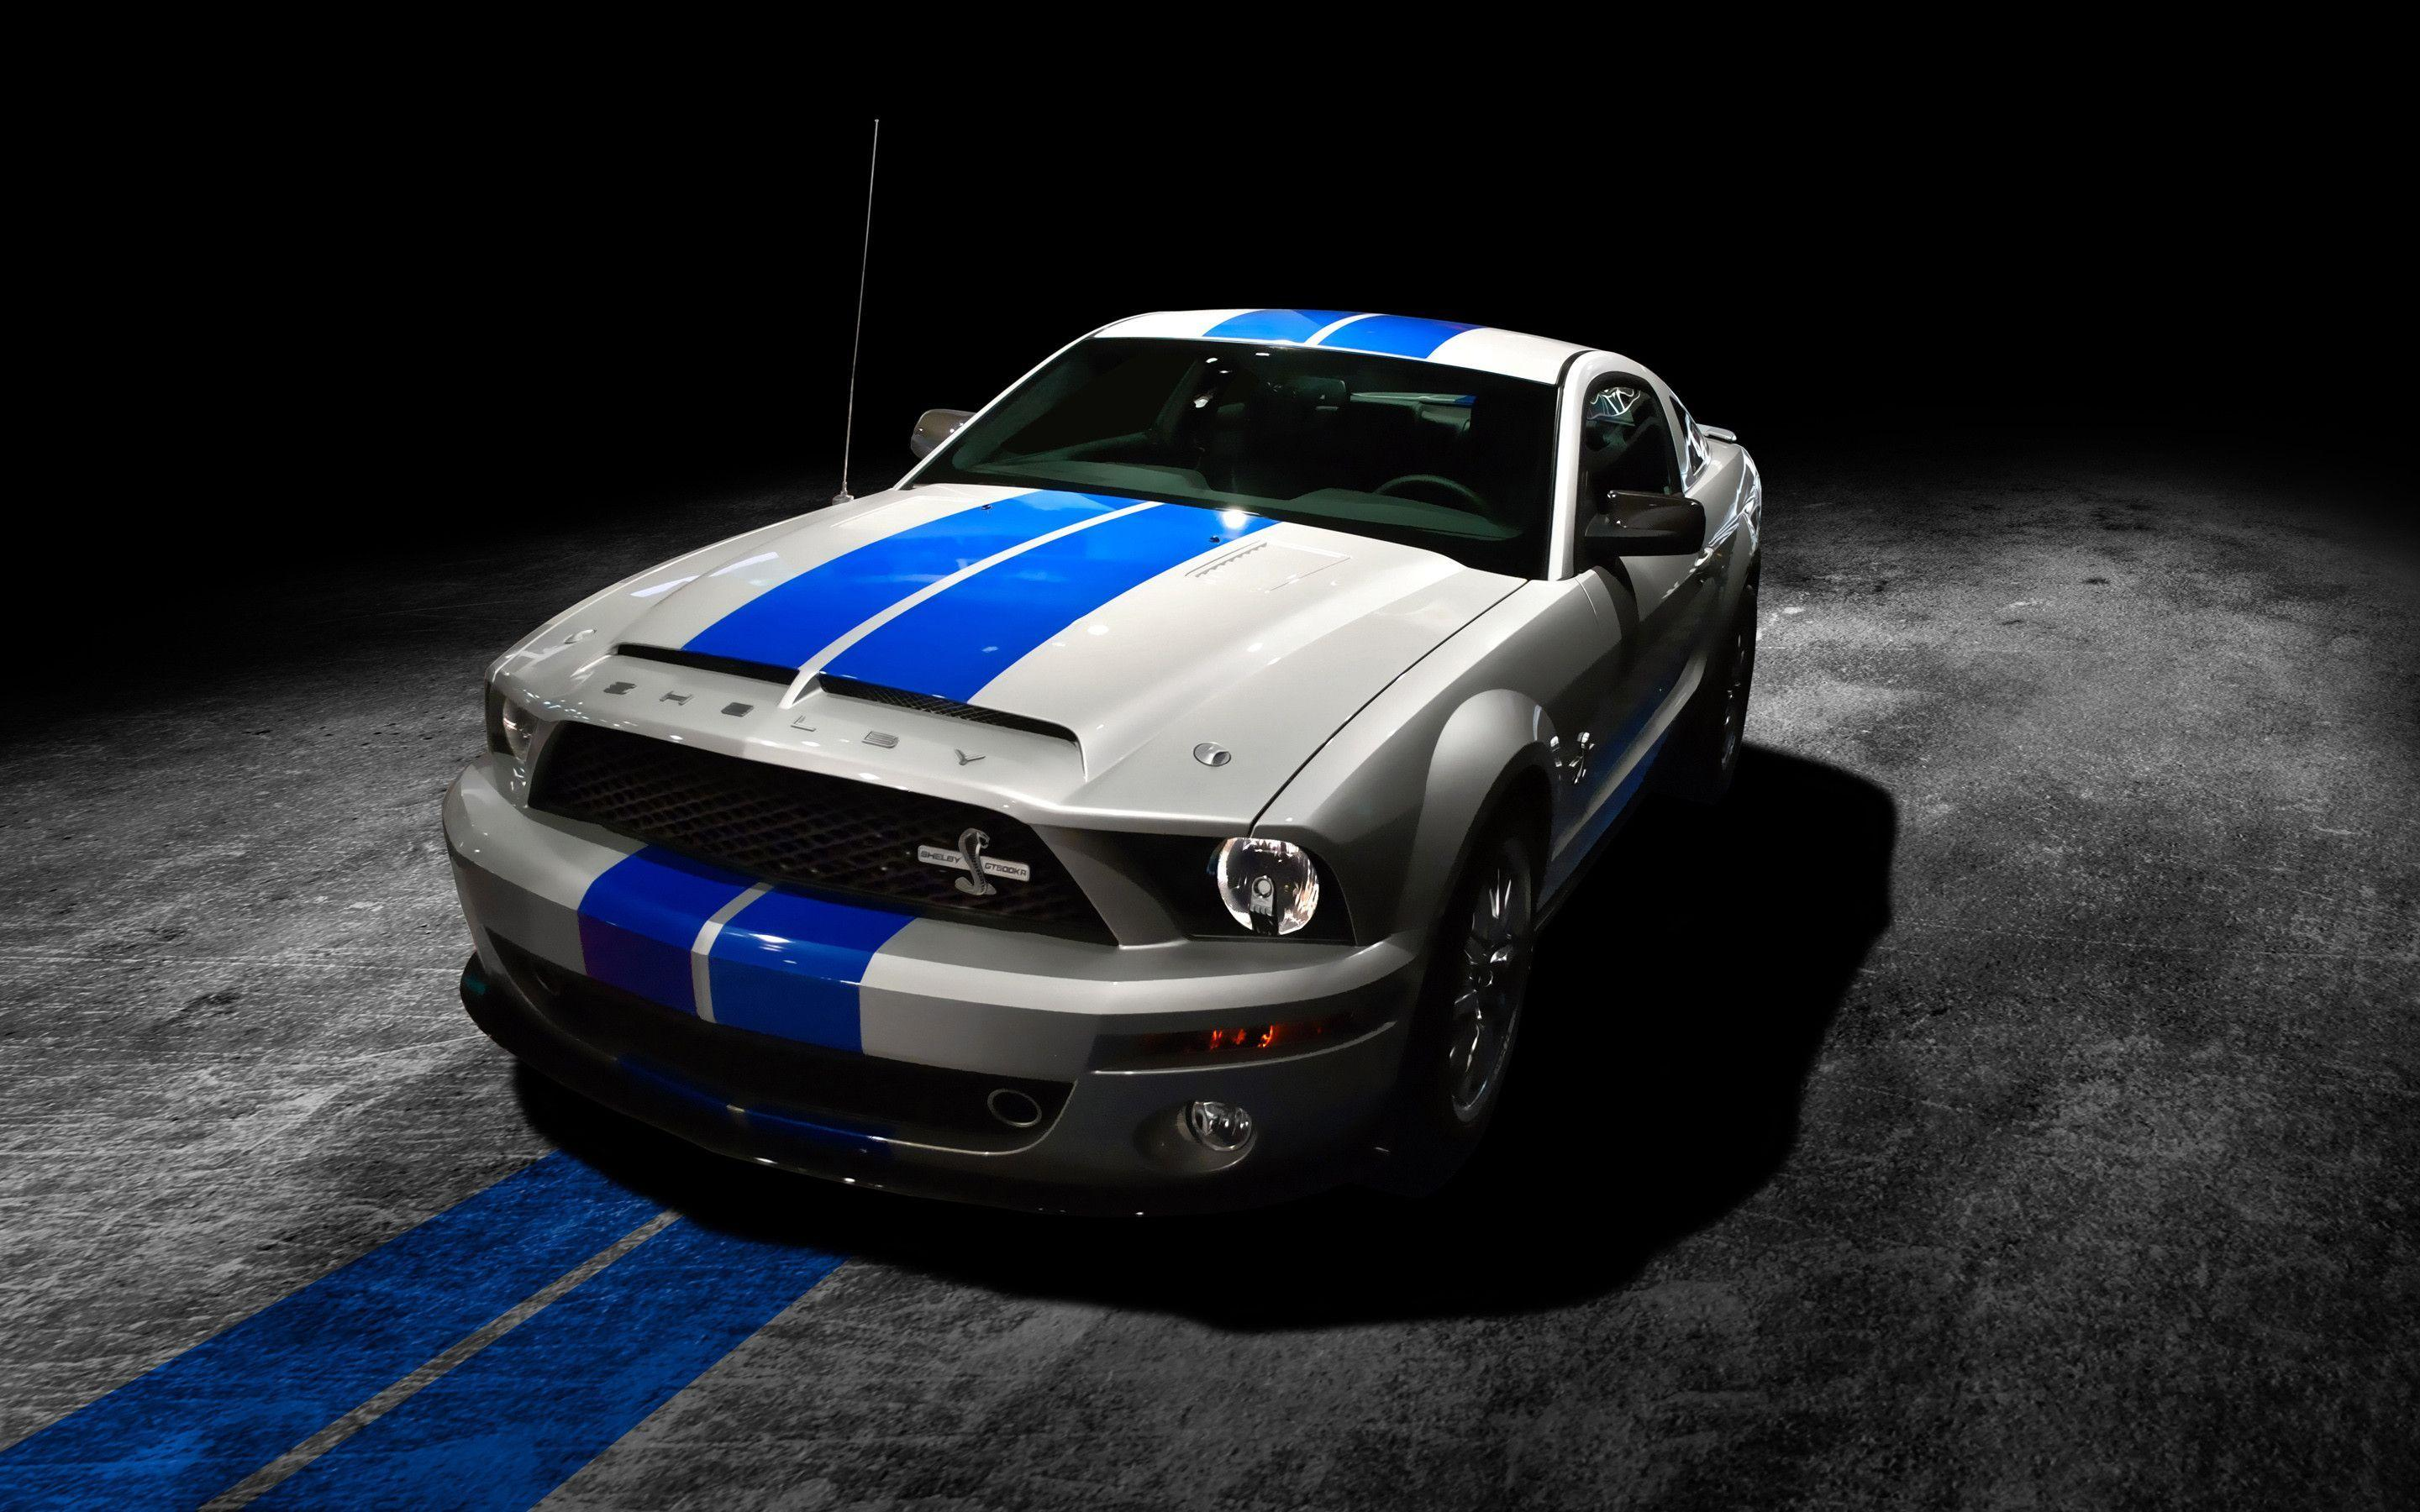 Ford Mustang Cars Wallpapers Top Free Ford Mustang Cars Backgrounds Wallpaperaccess